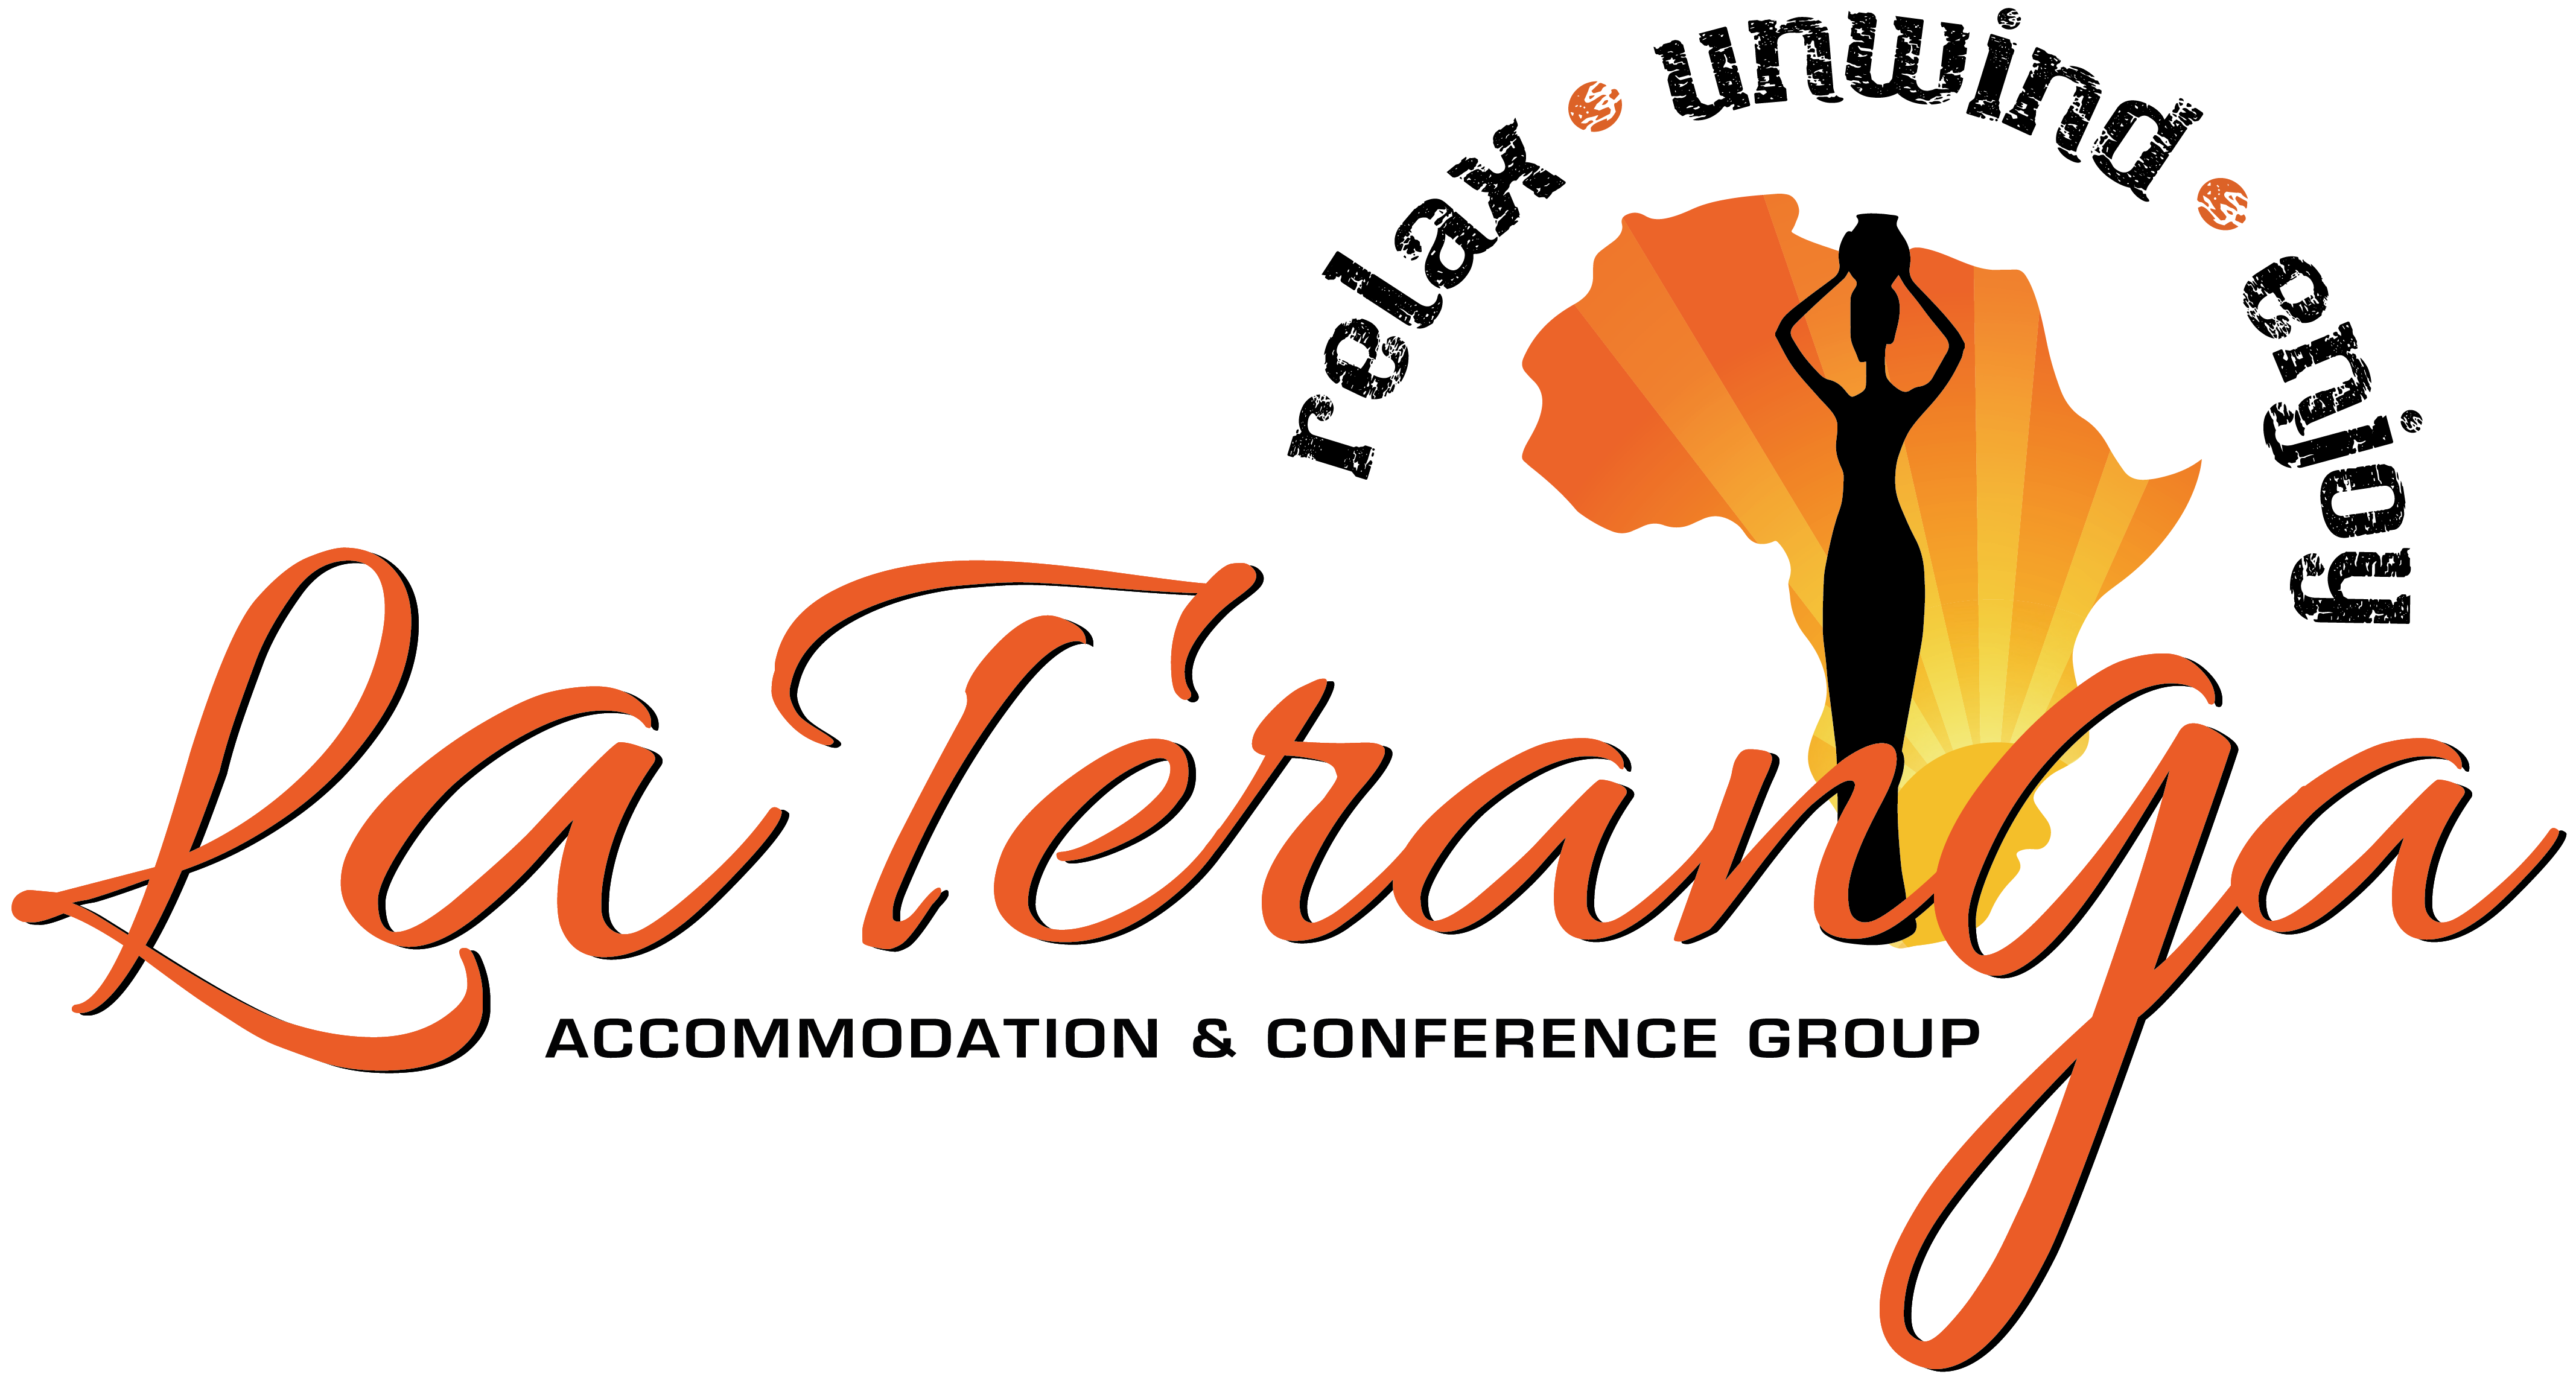 La Teranga Accommodation & Conference Group, in Kokstad